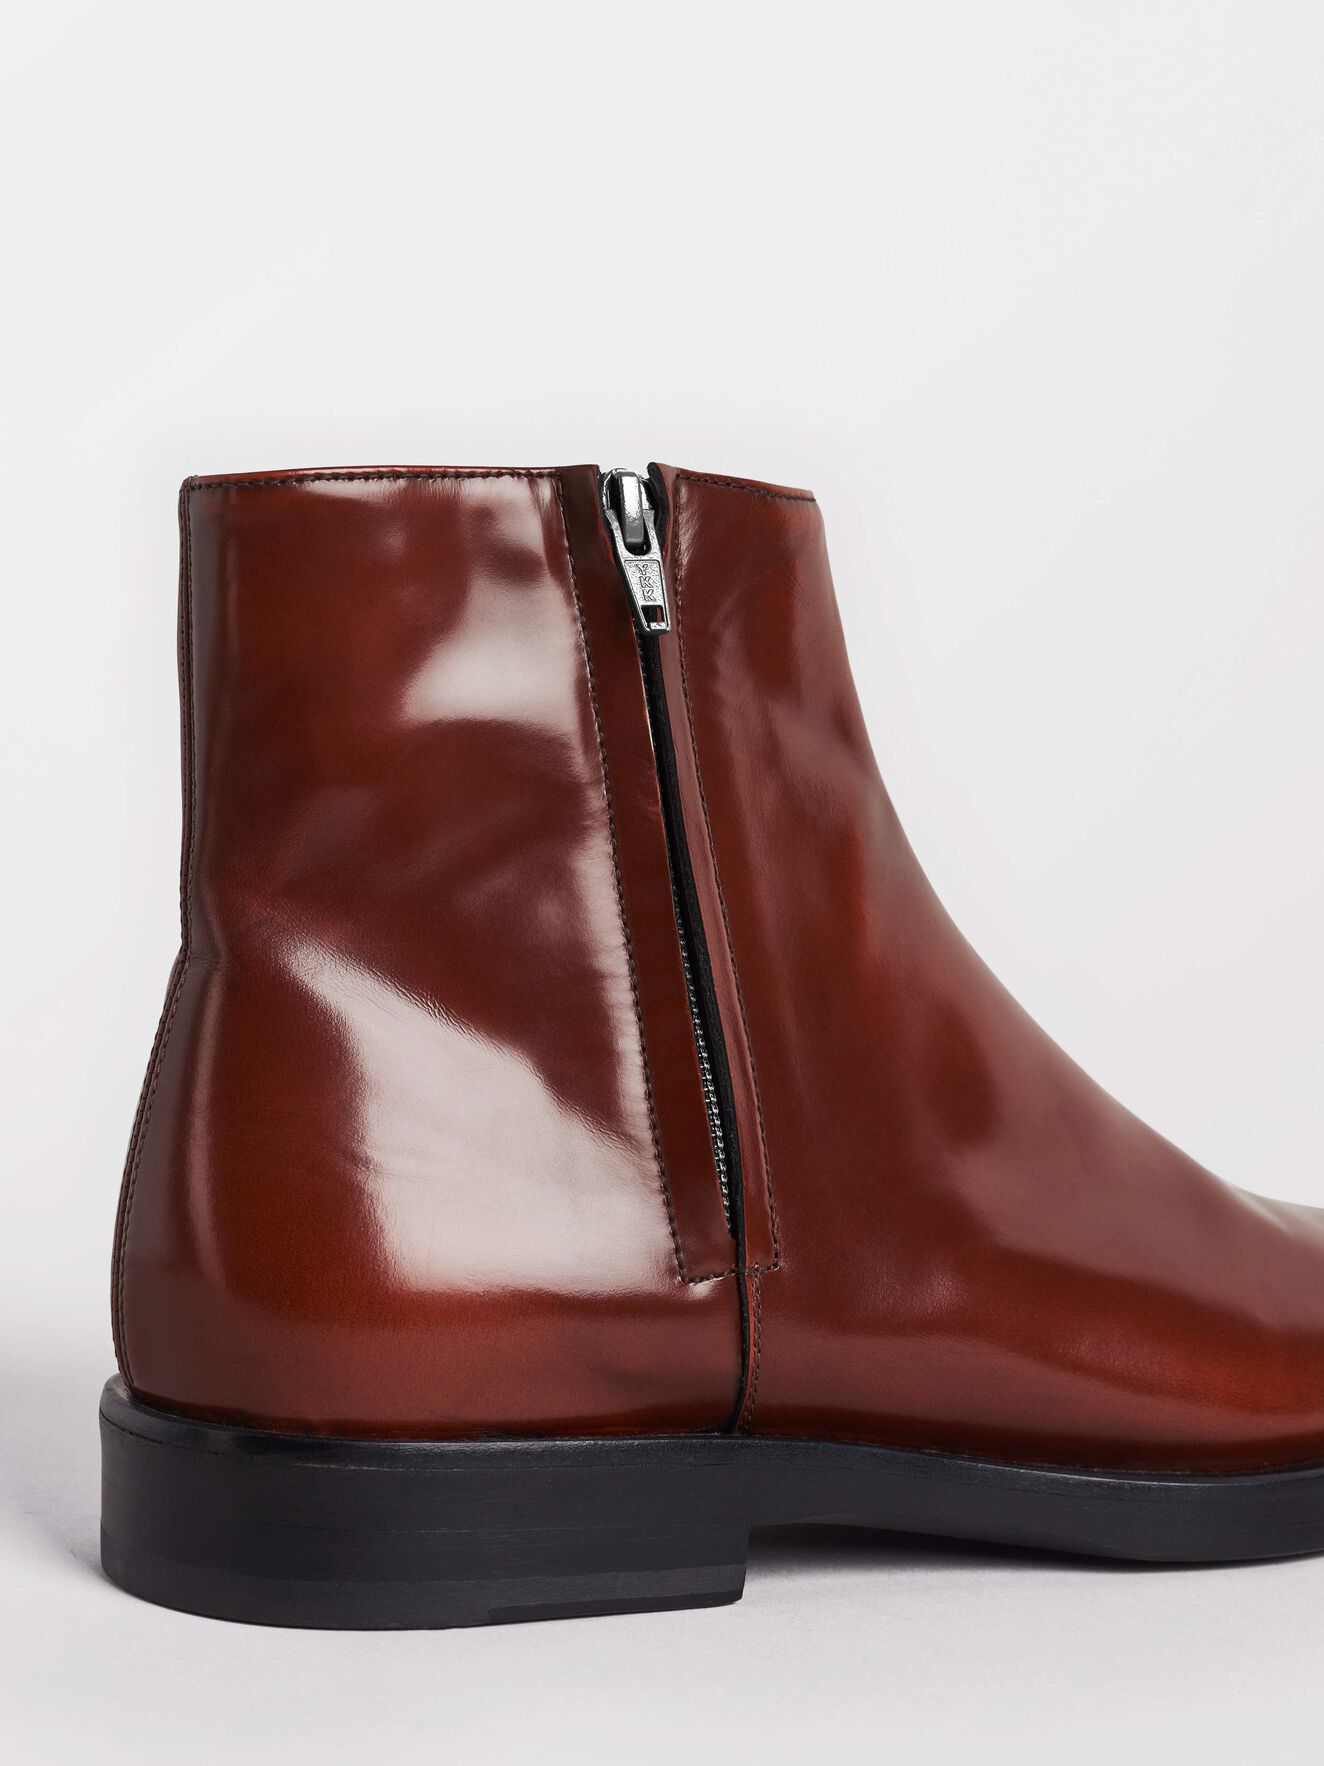 Bartis Boots in Cognac from Tiger of Sweden